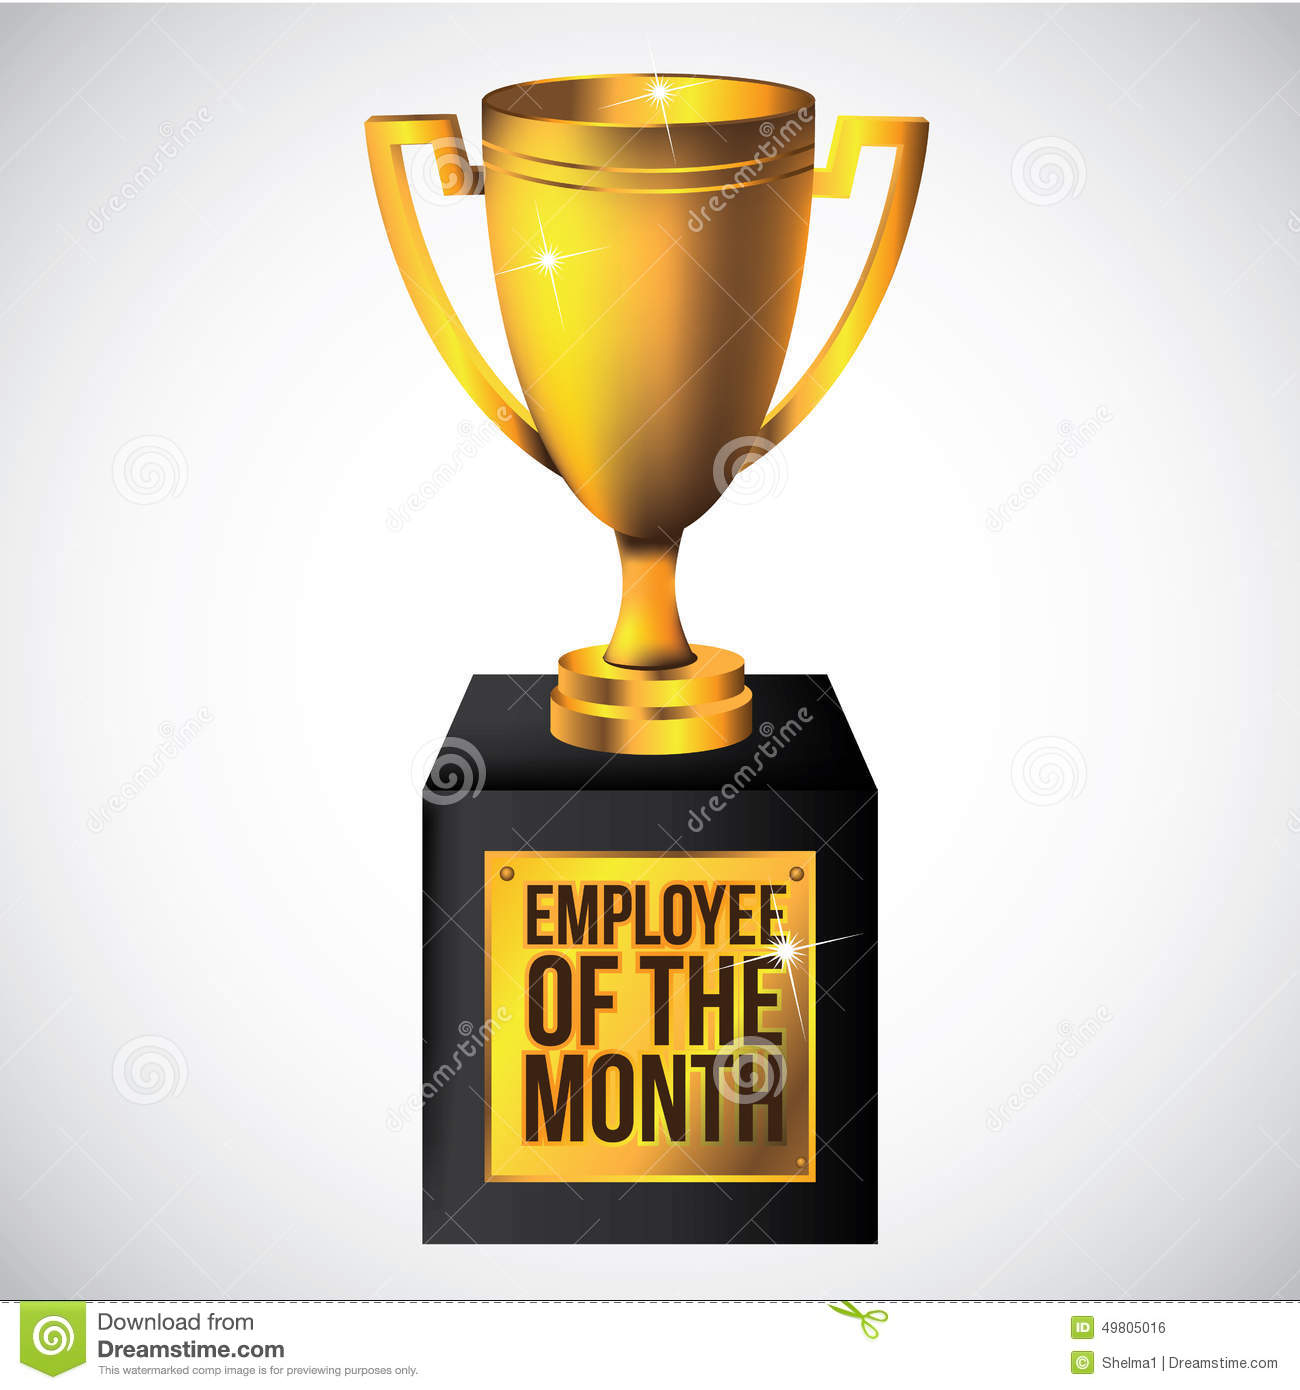 Employee Of The Month Trophy Royalty Free Stock Images - Image ... image black and white